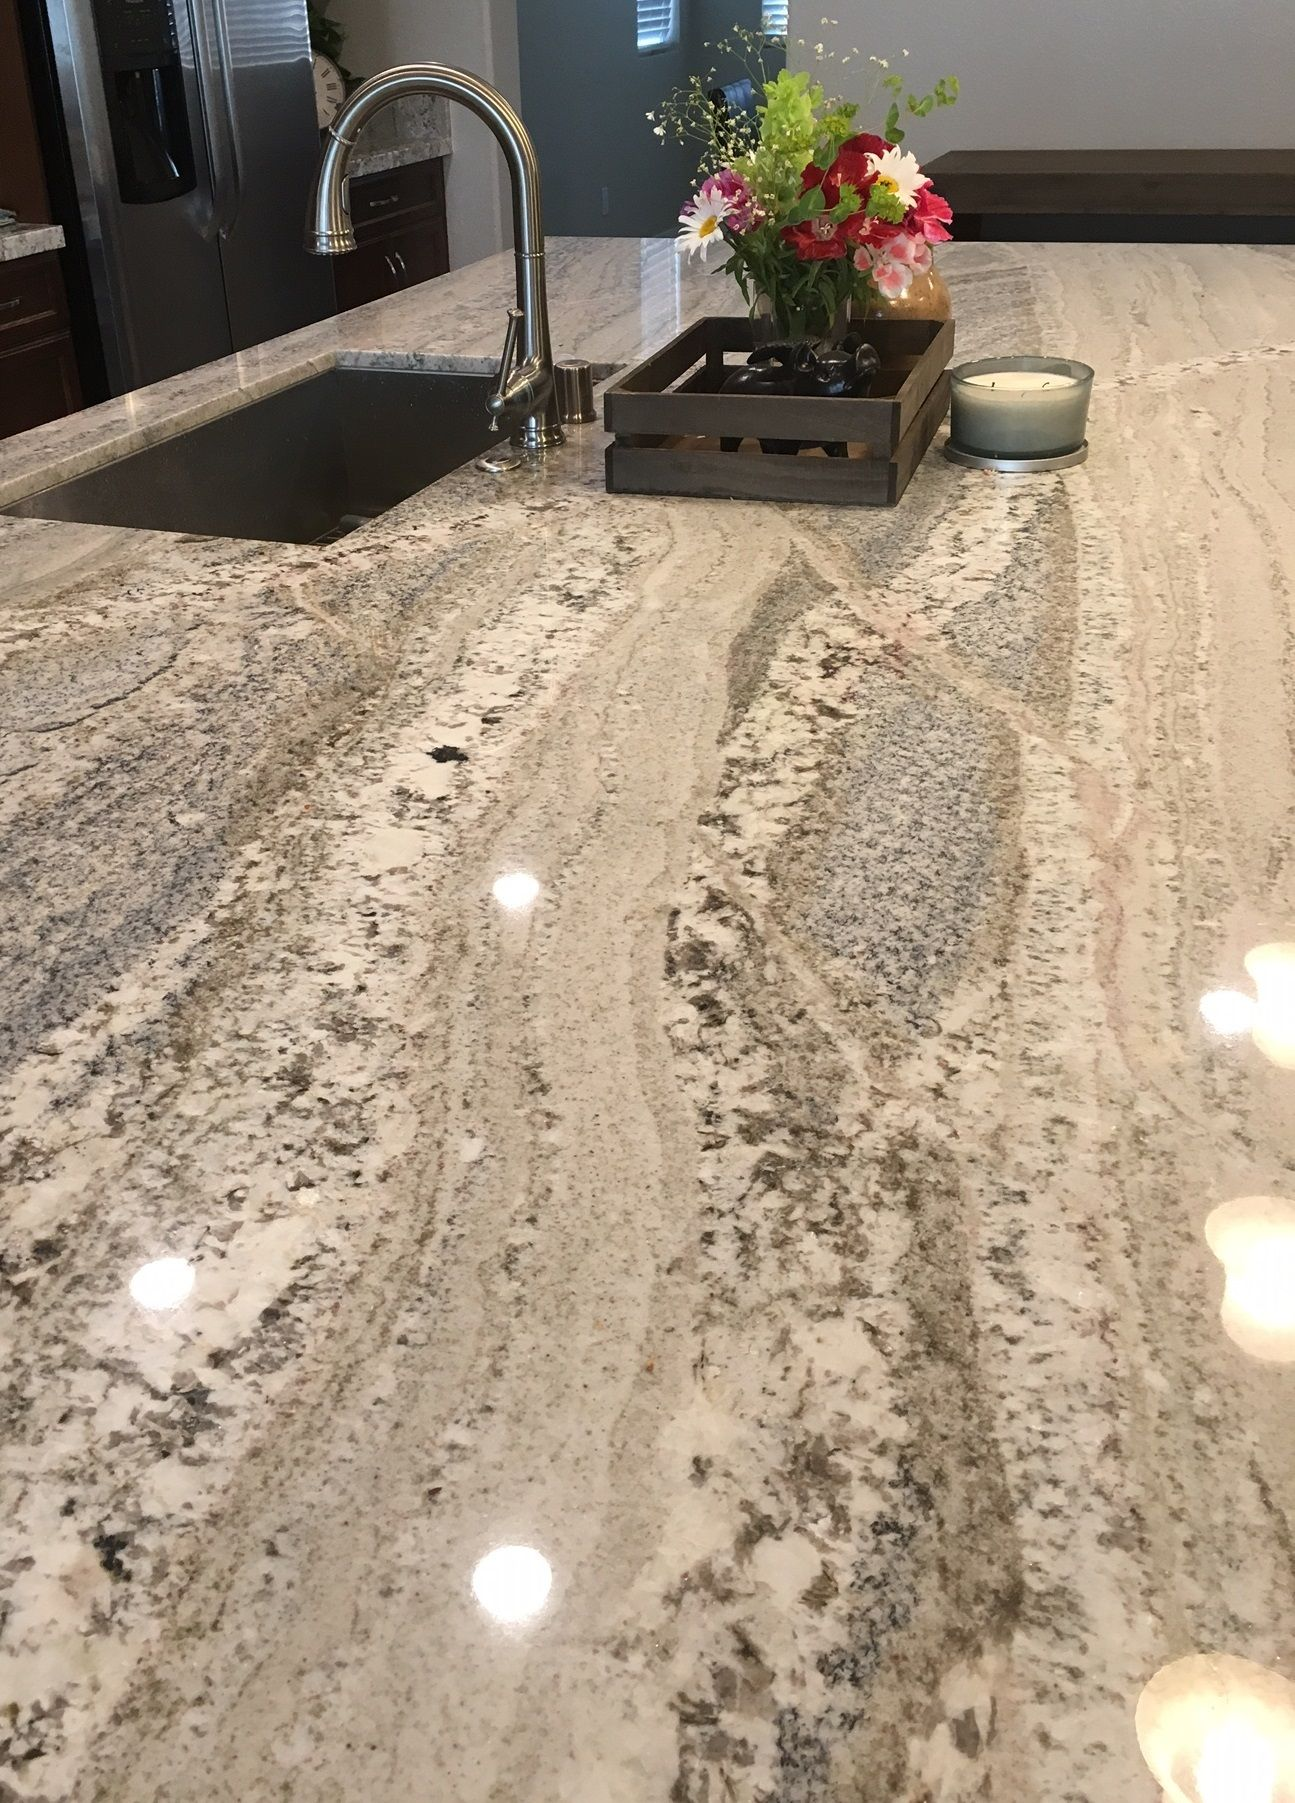 Taj Mahal Granite Kitchen Taj Mahal Quartzite Has A Soft Look A Very Light Color Of A White